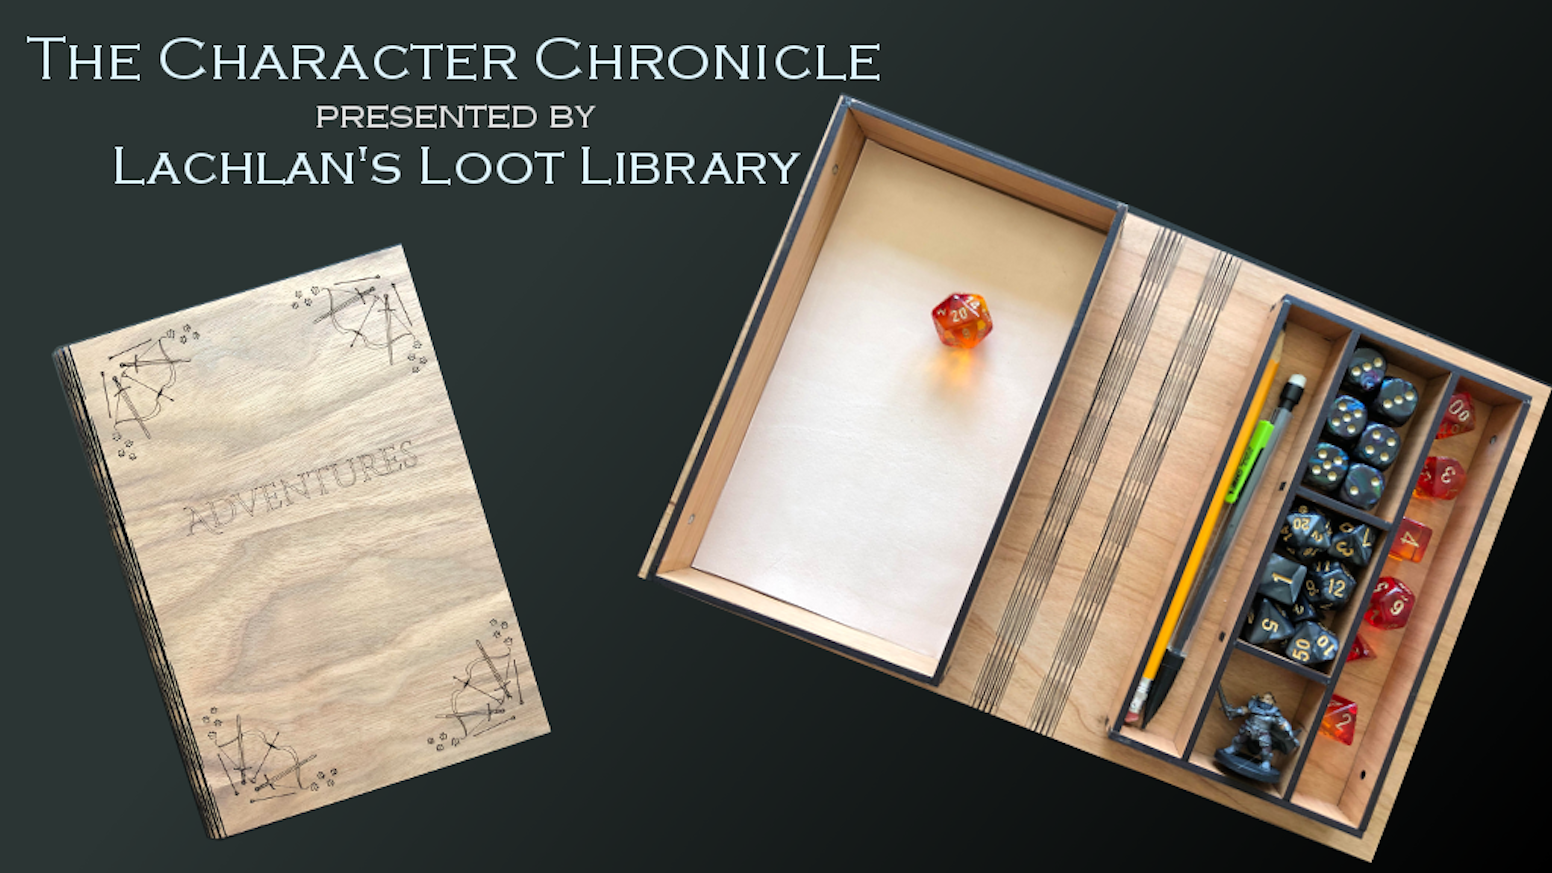 An elegant book-shaped character/dice storage box for Dungeons and Dragons and other TTRPG games.